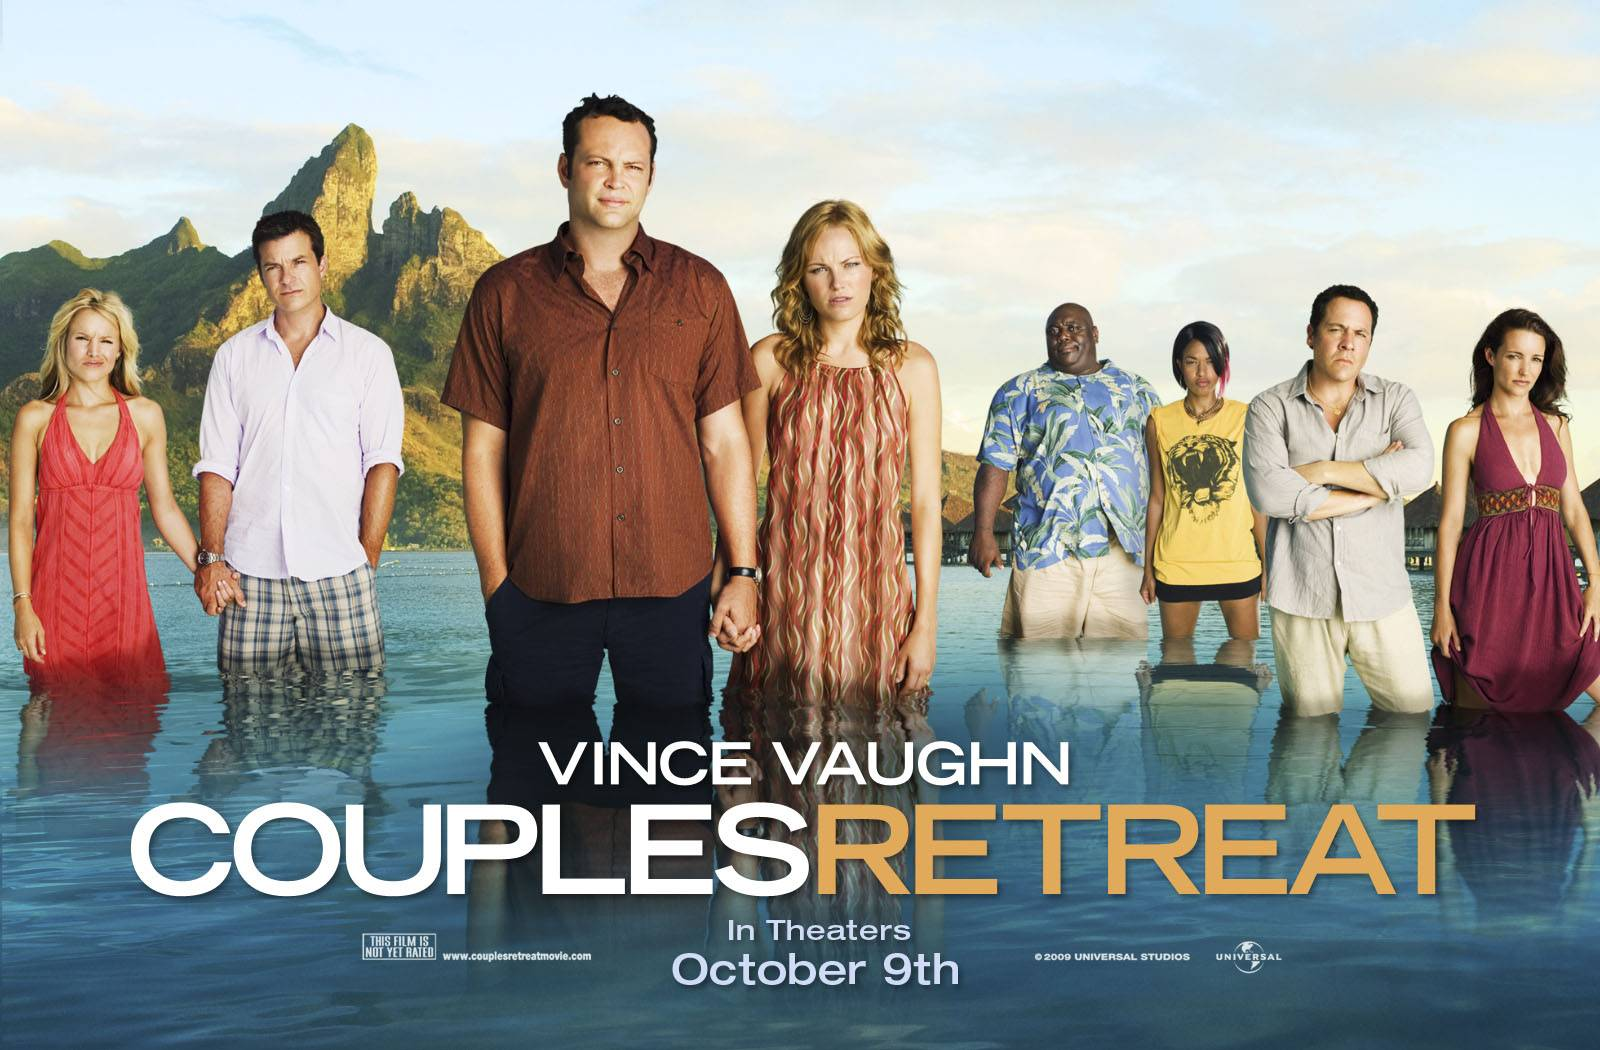 NISMO Stuff: Couples Retreat: A Movie Review... Malin Akerman Married